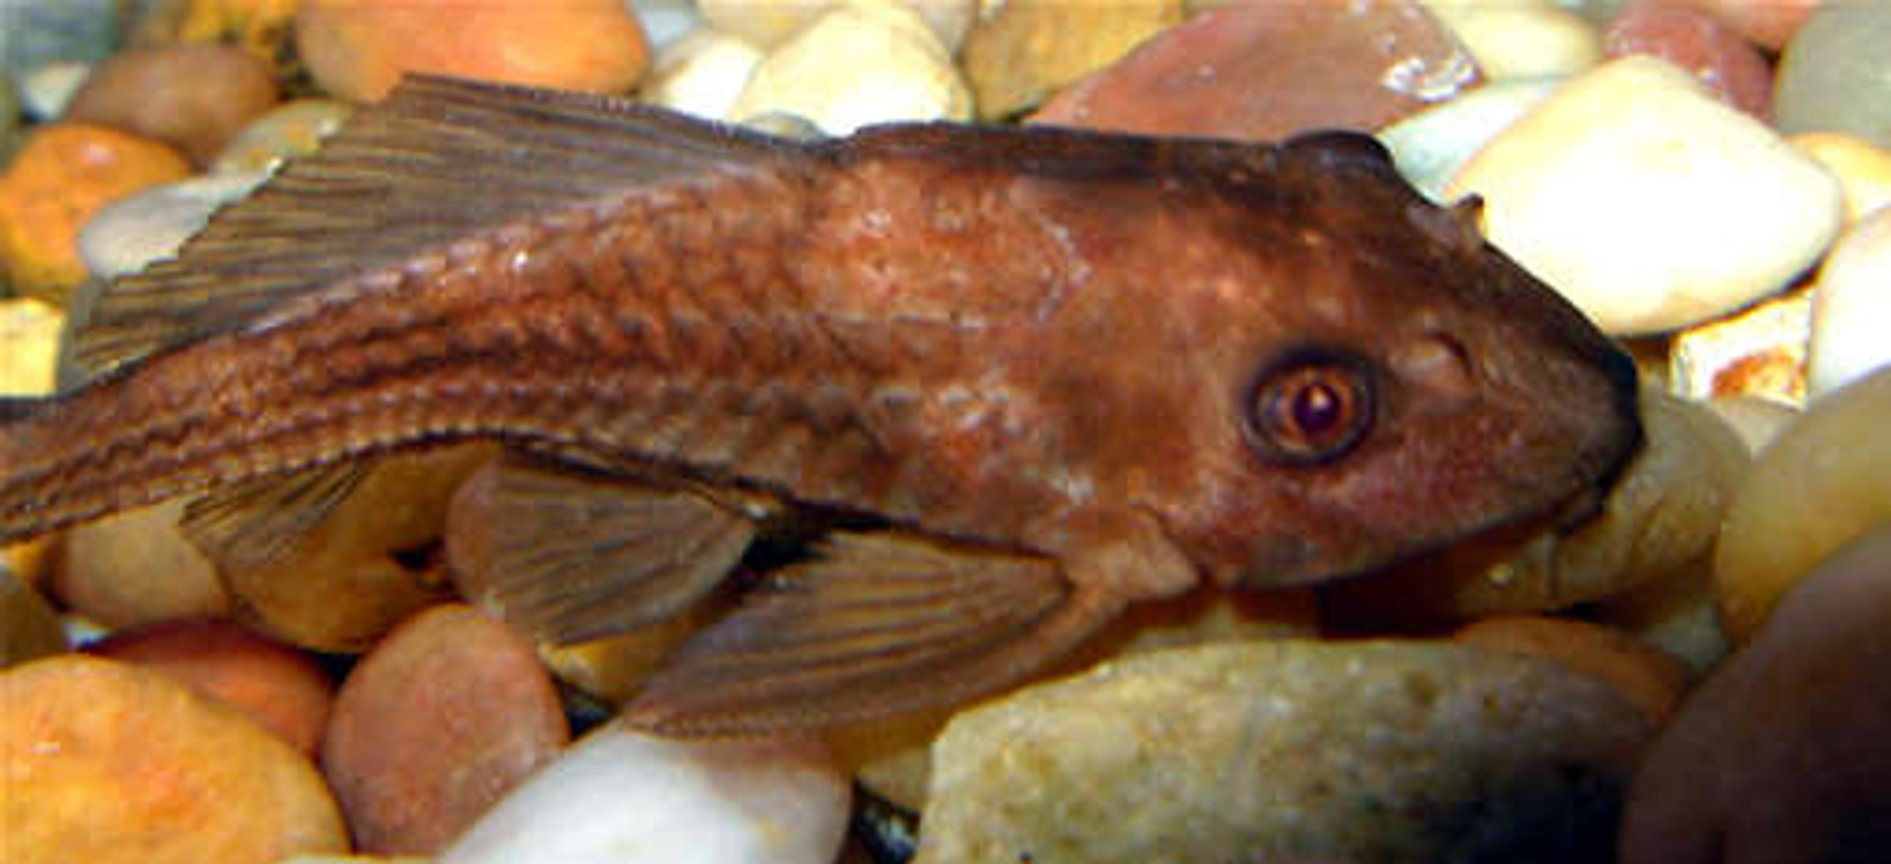 freshwater fish - ancistrus sp. - bushy nose pleco l-144 stocking in 55 gallons tank - Algae Eater